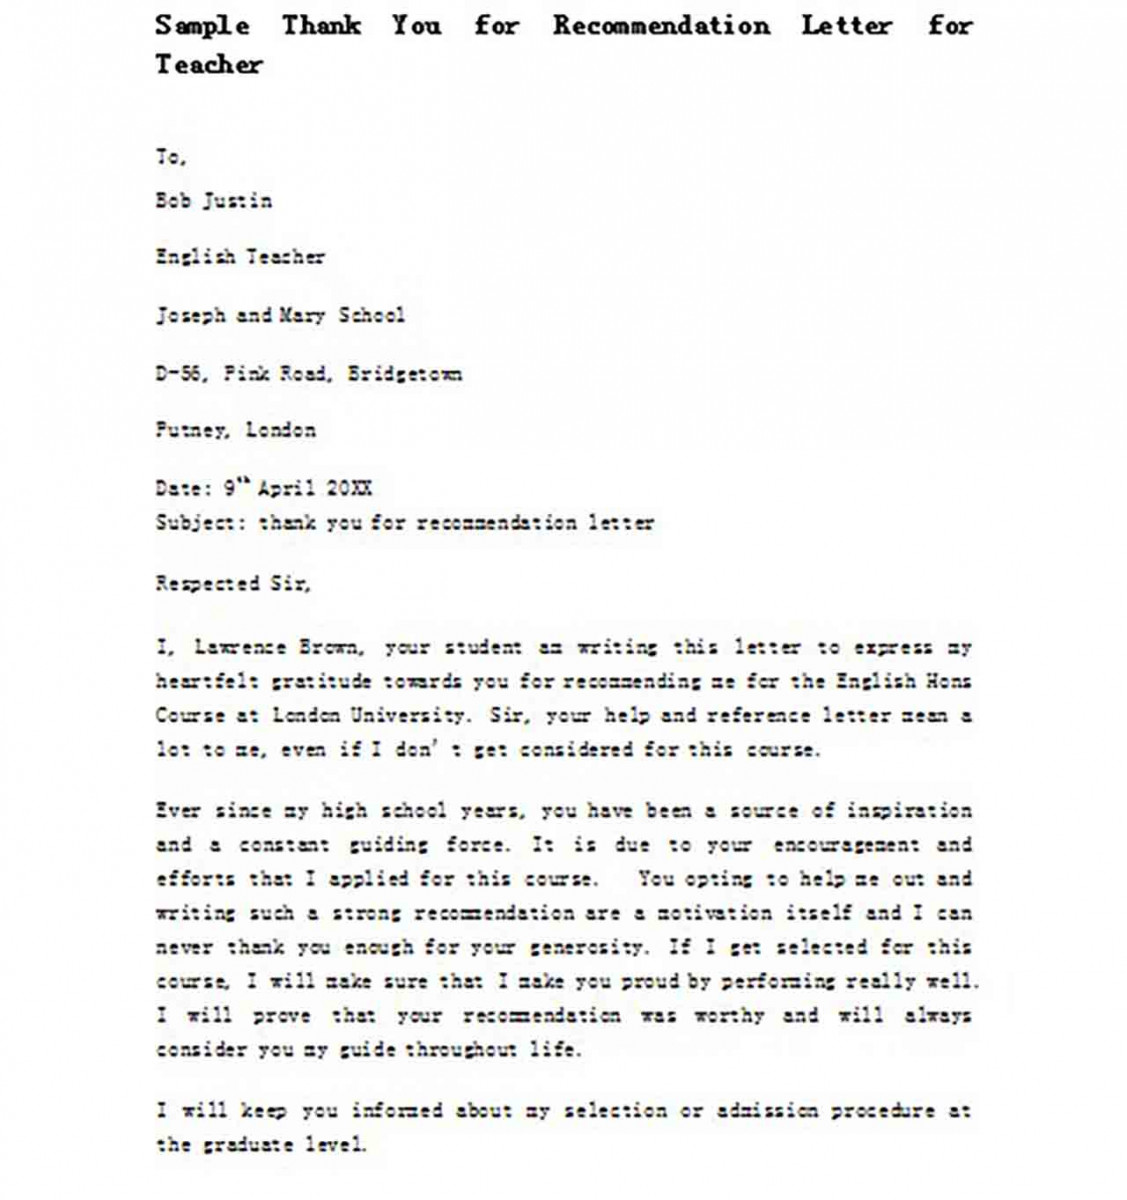 Sample Thank You for Recommendation Letter for Teacher